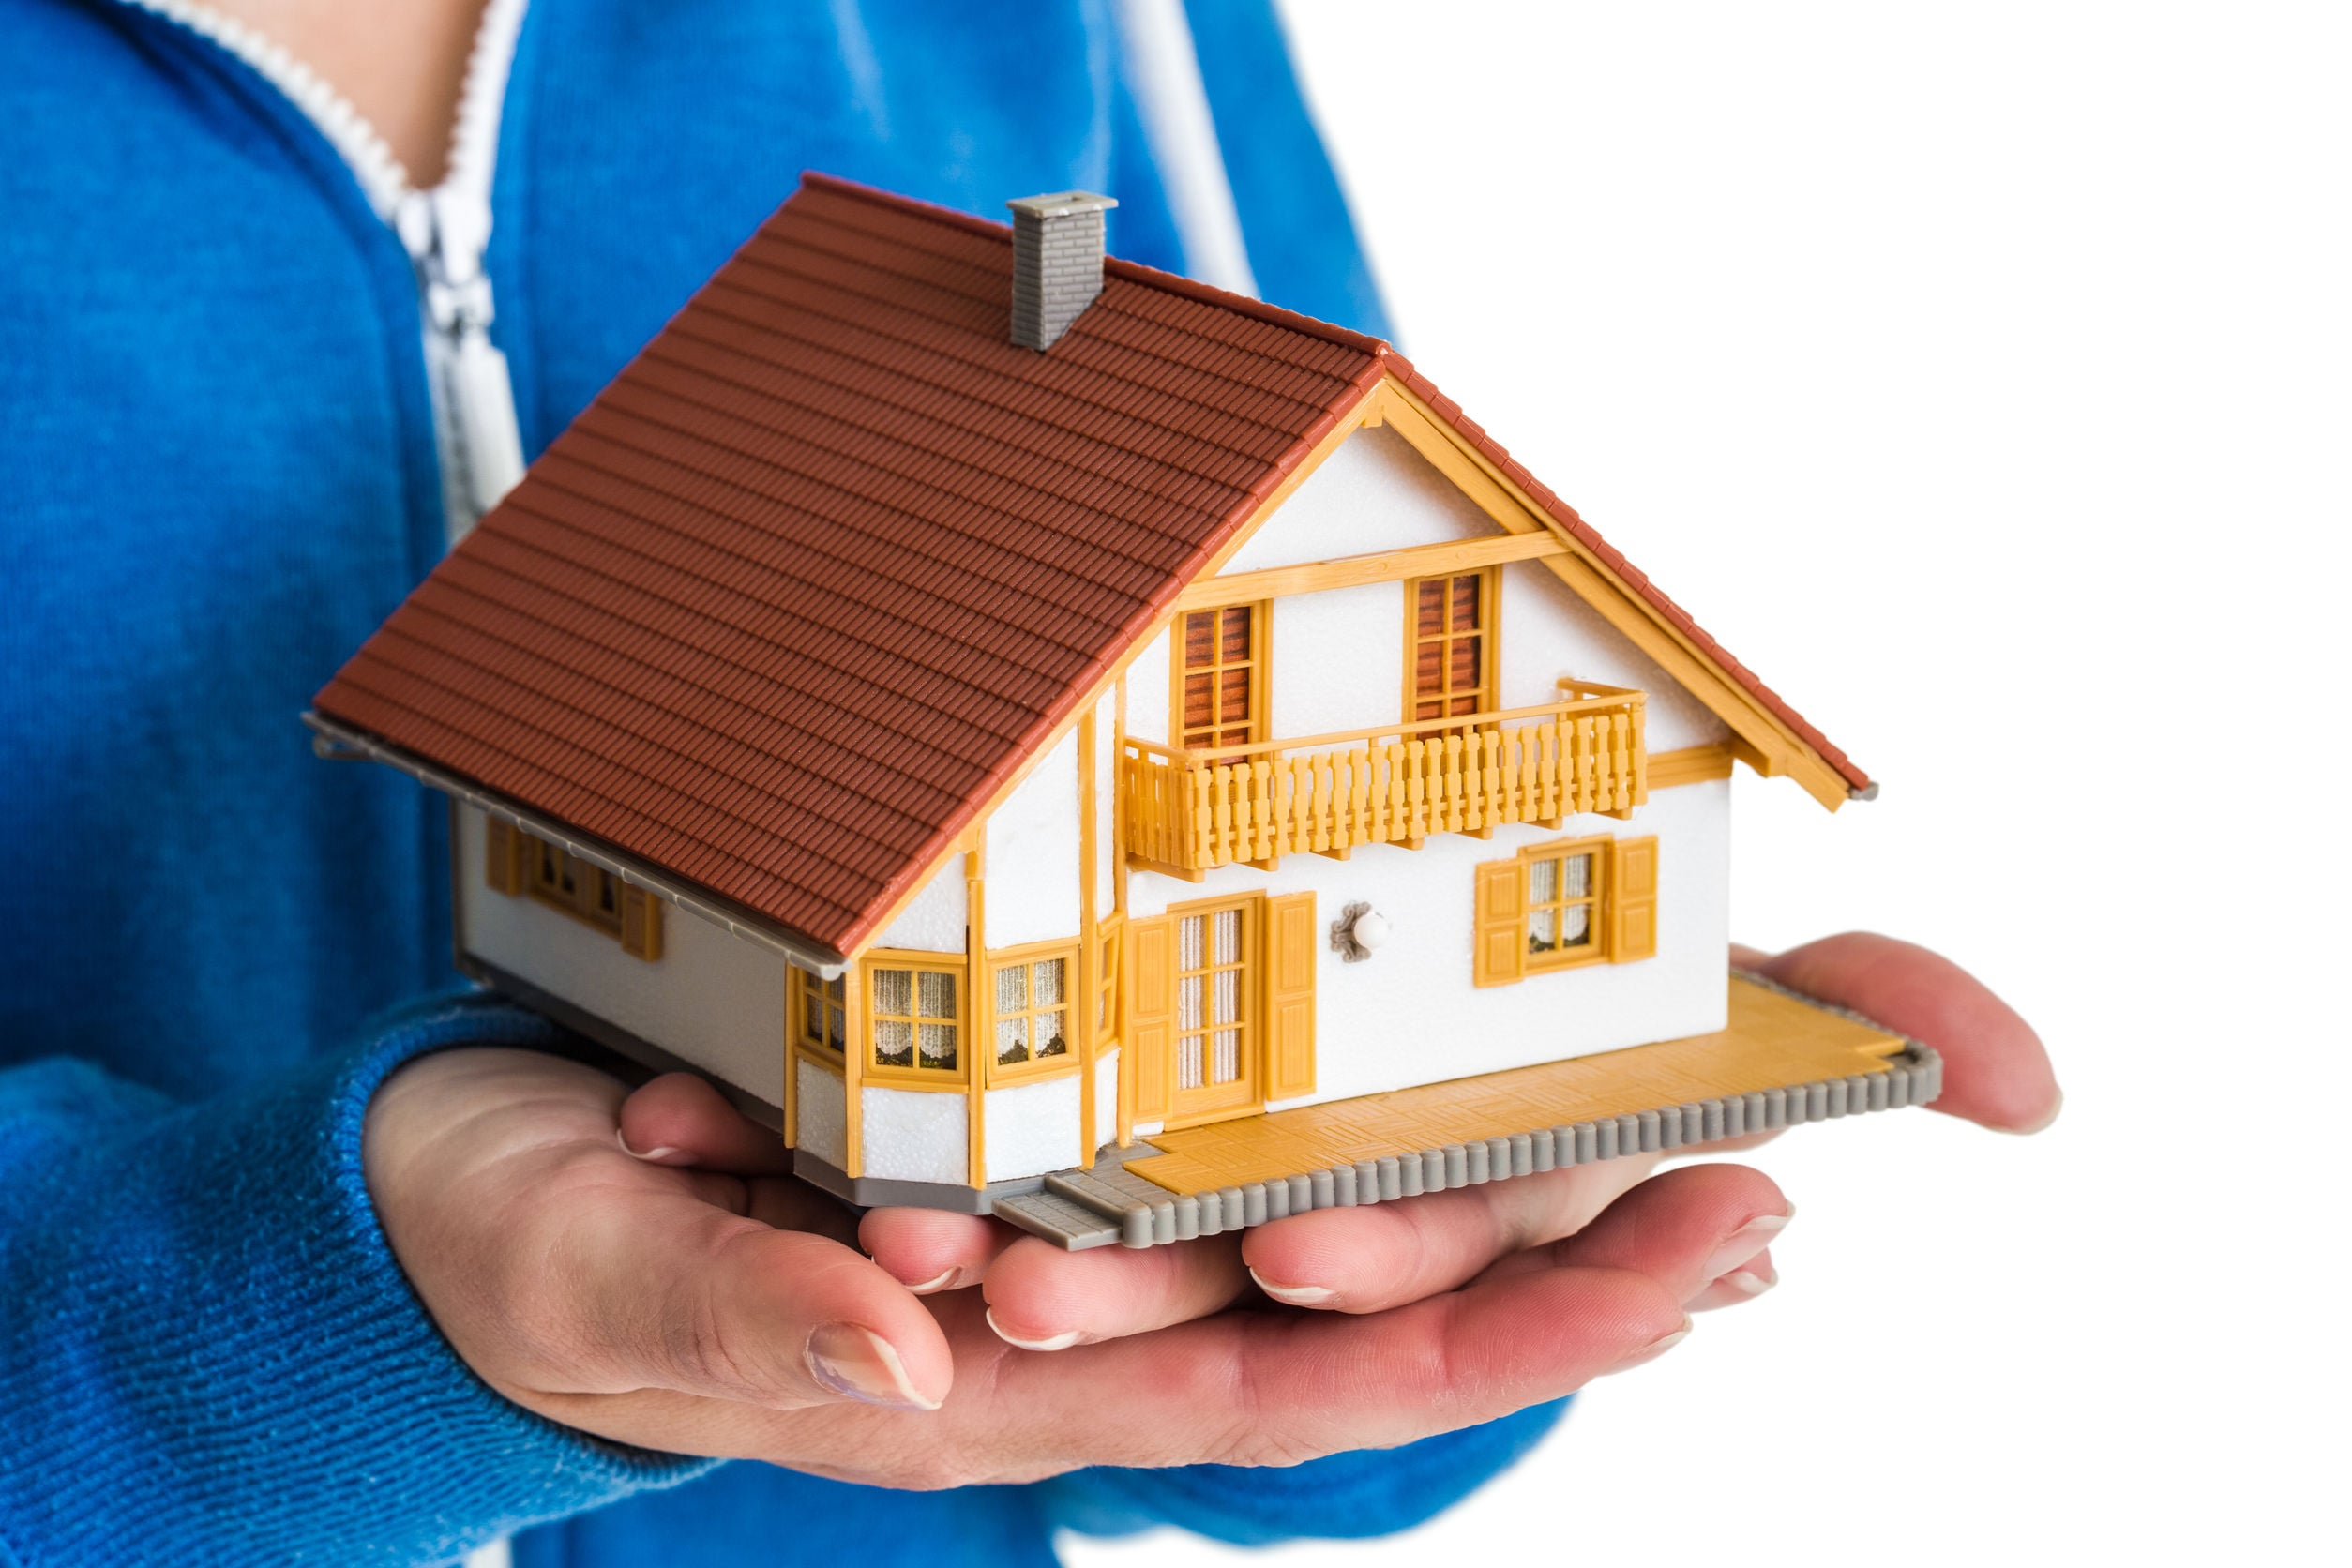 a Home Inventory Can Help Your Insurance Claim